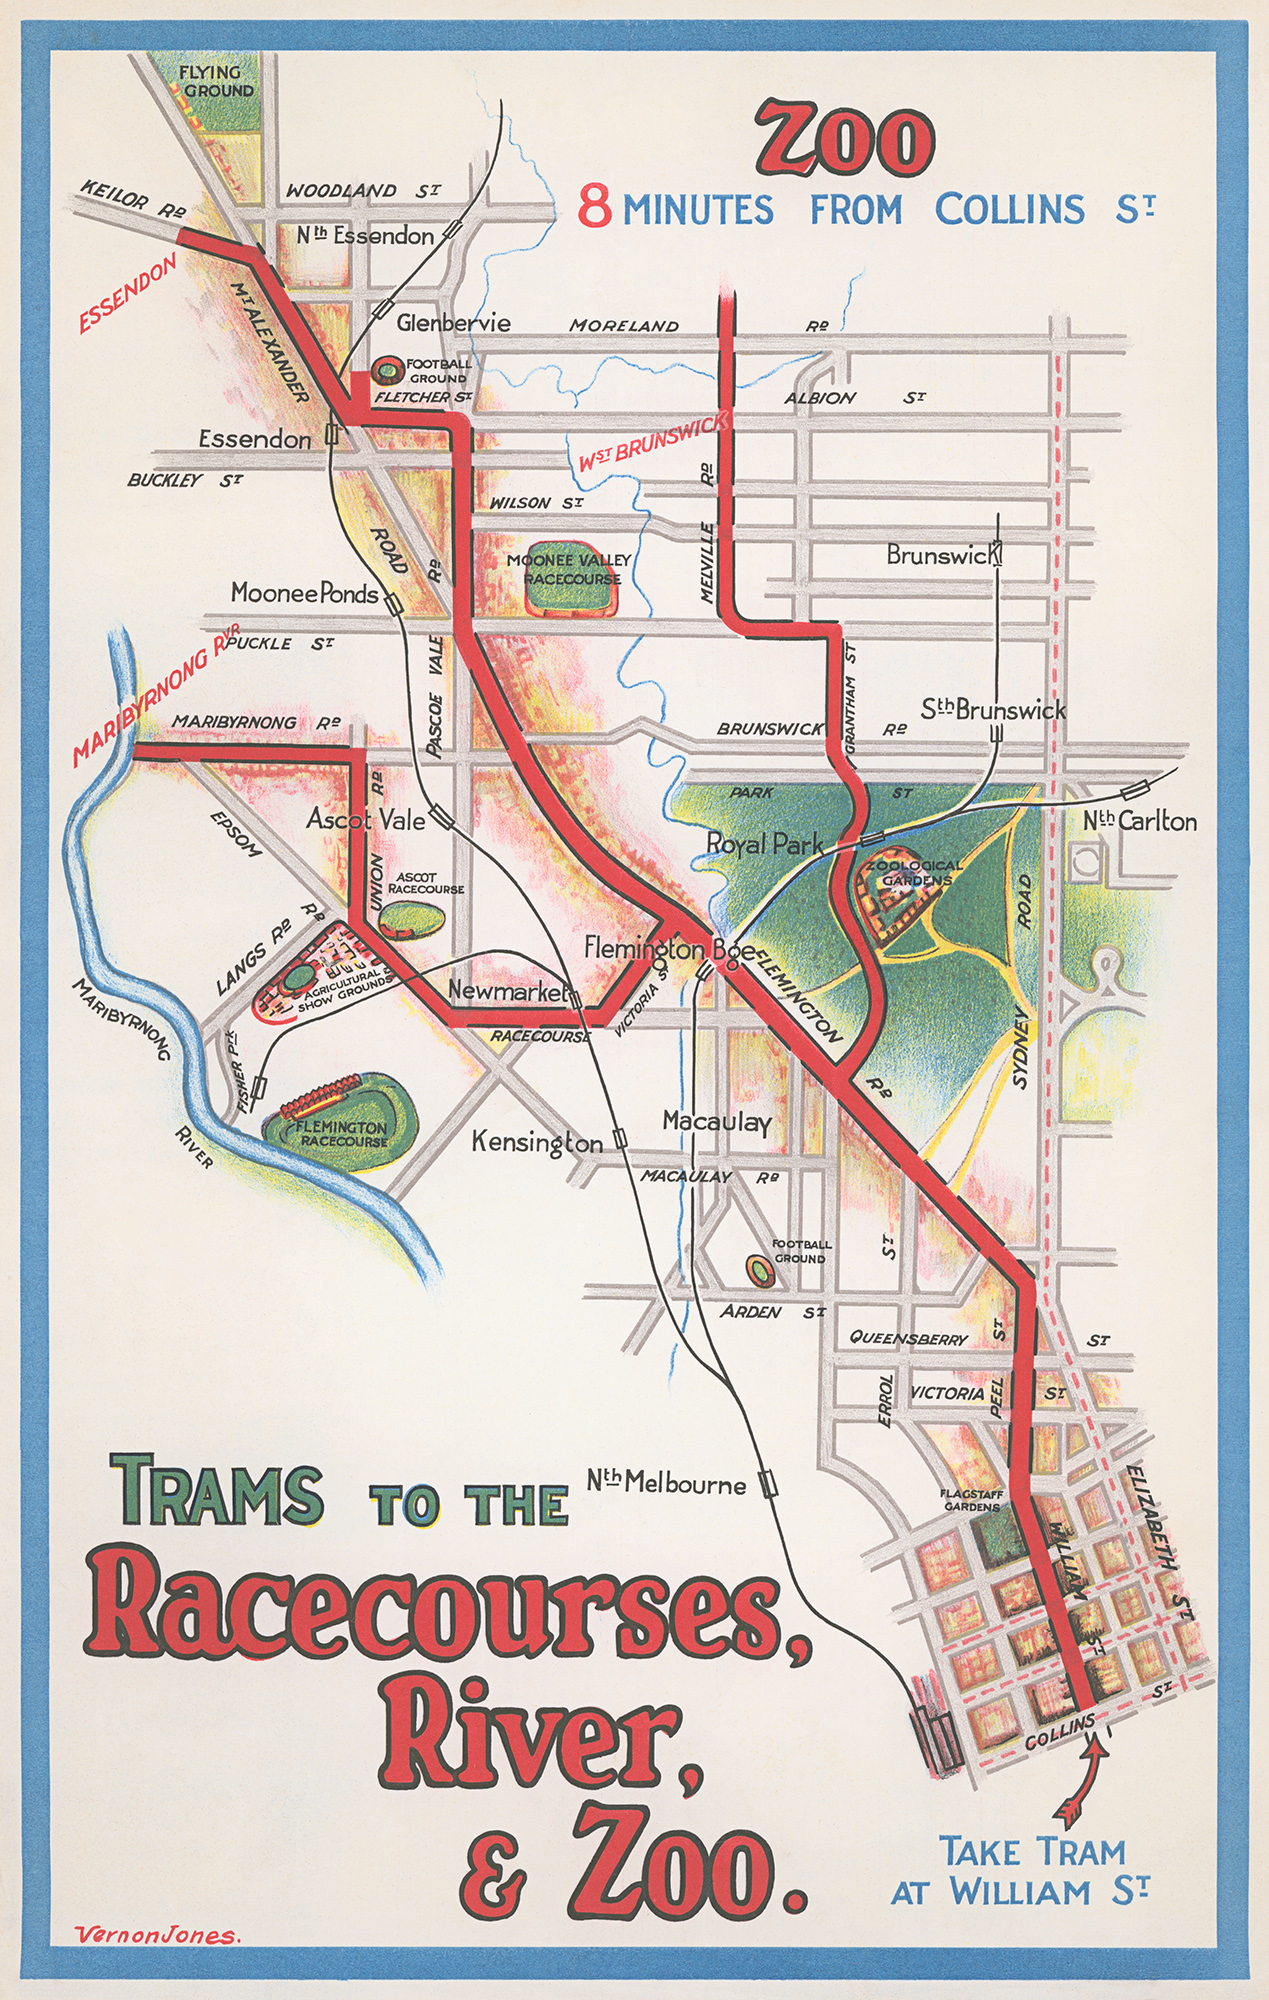 Boston Subway Map To Zoo.1930 Melbourne Trams Map To The Zoo